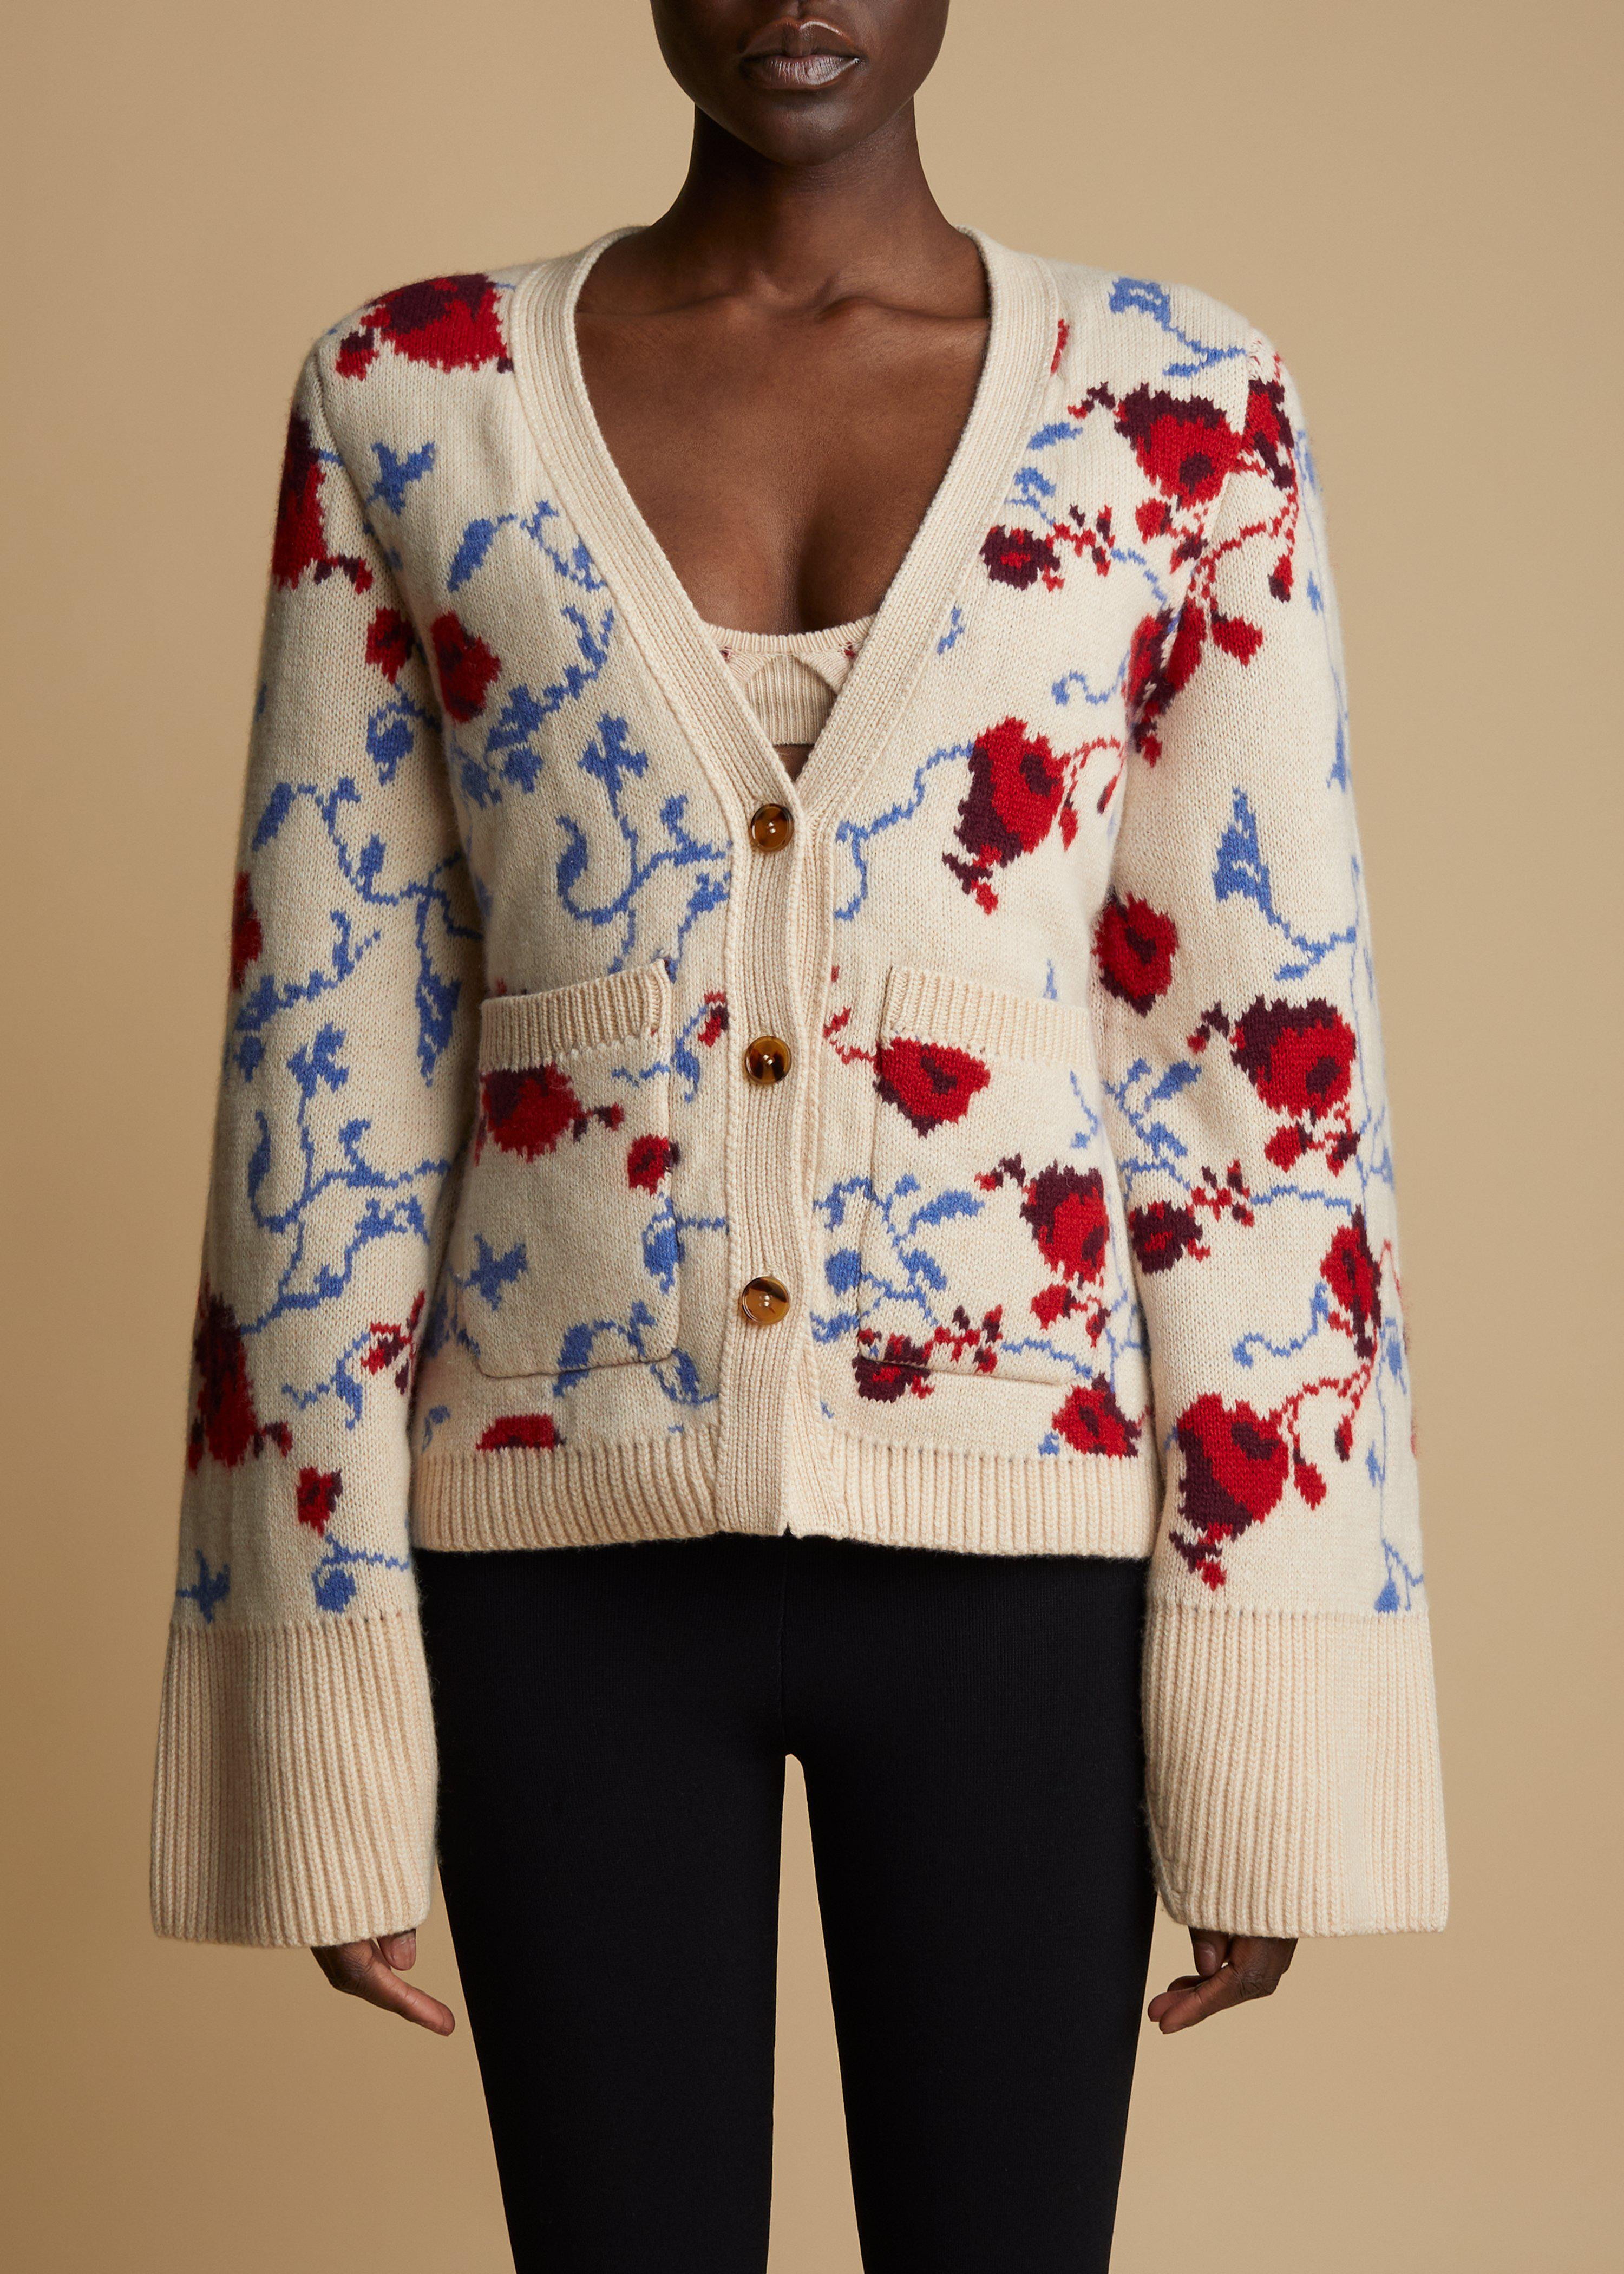 The Scarlet Cardigan in Floral Jacquard